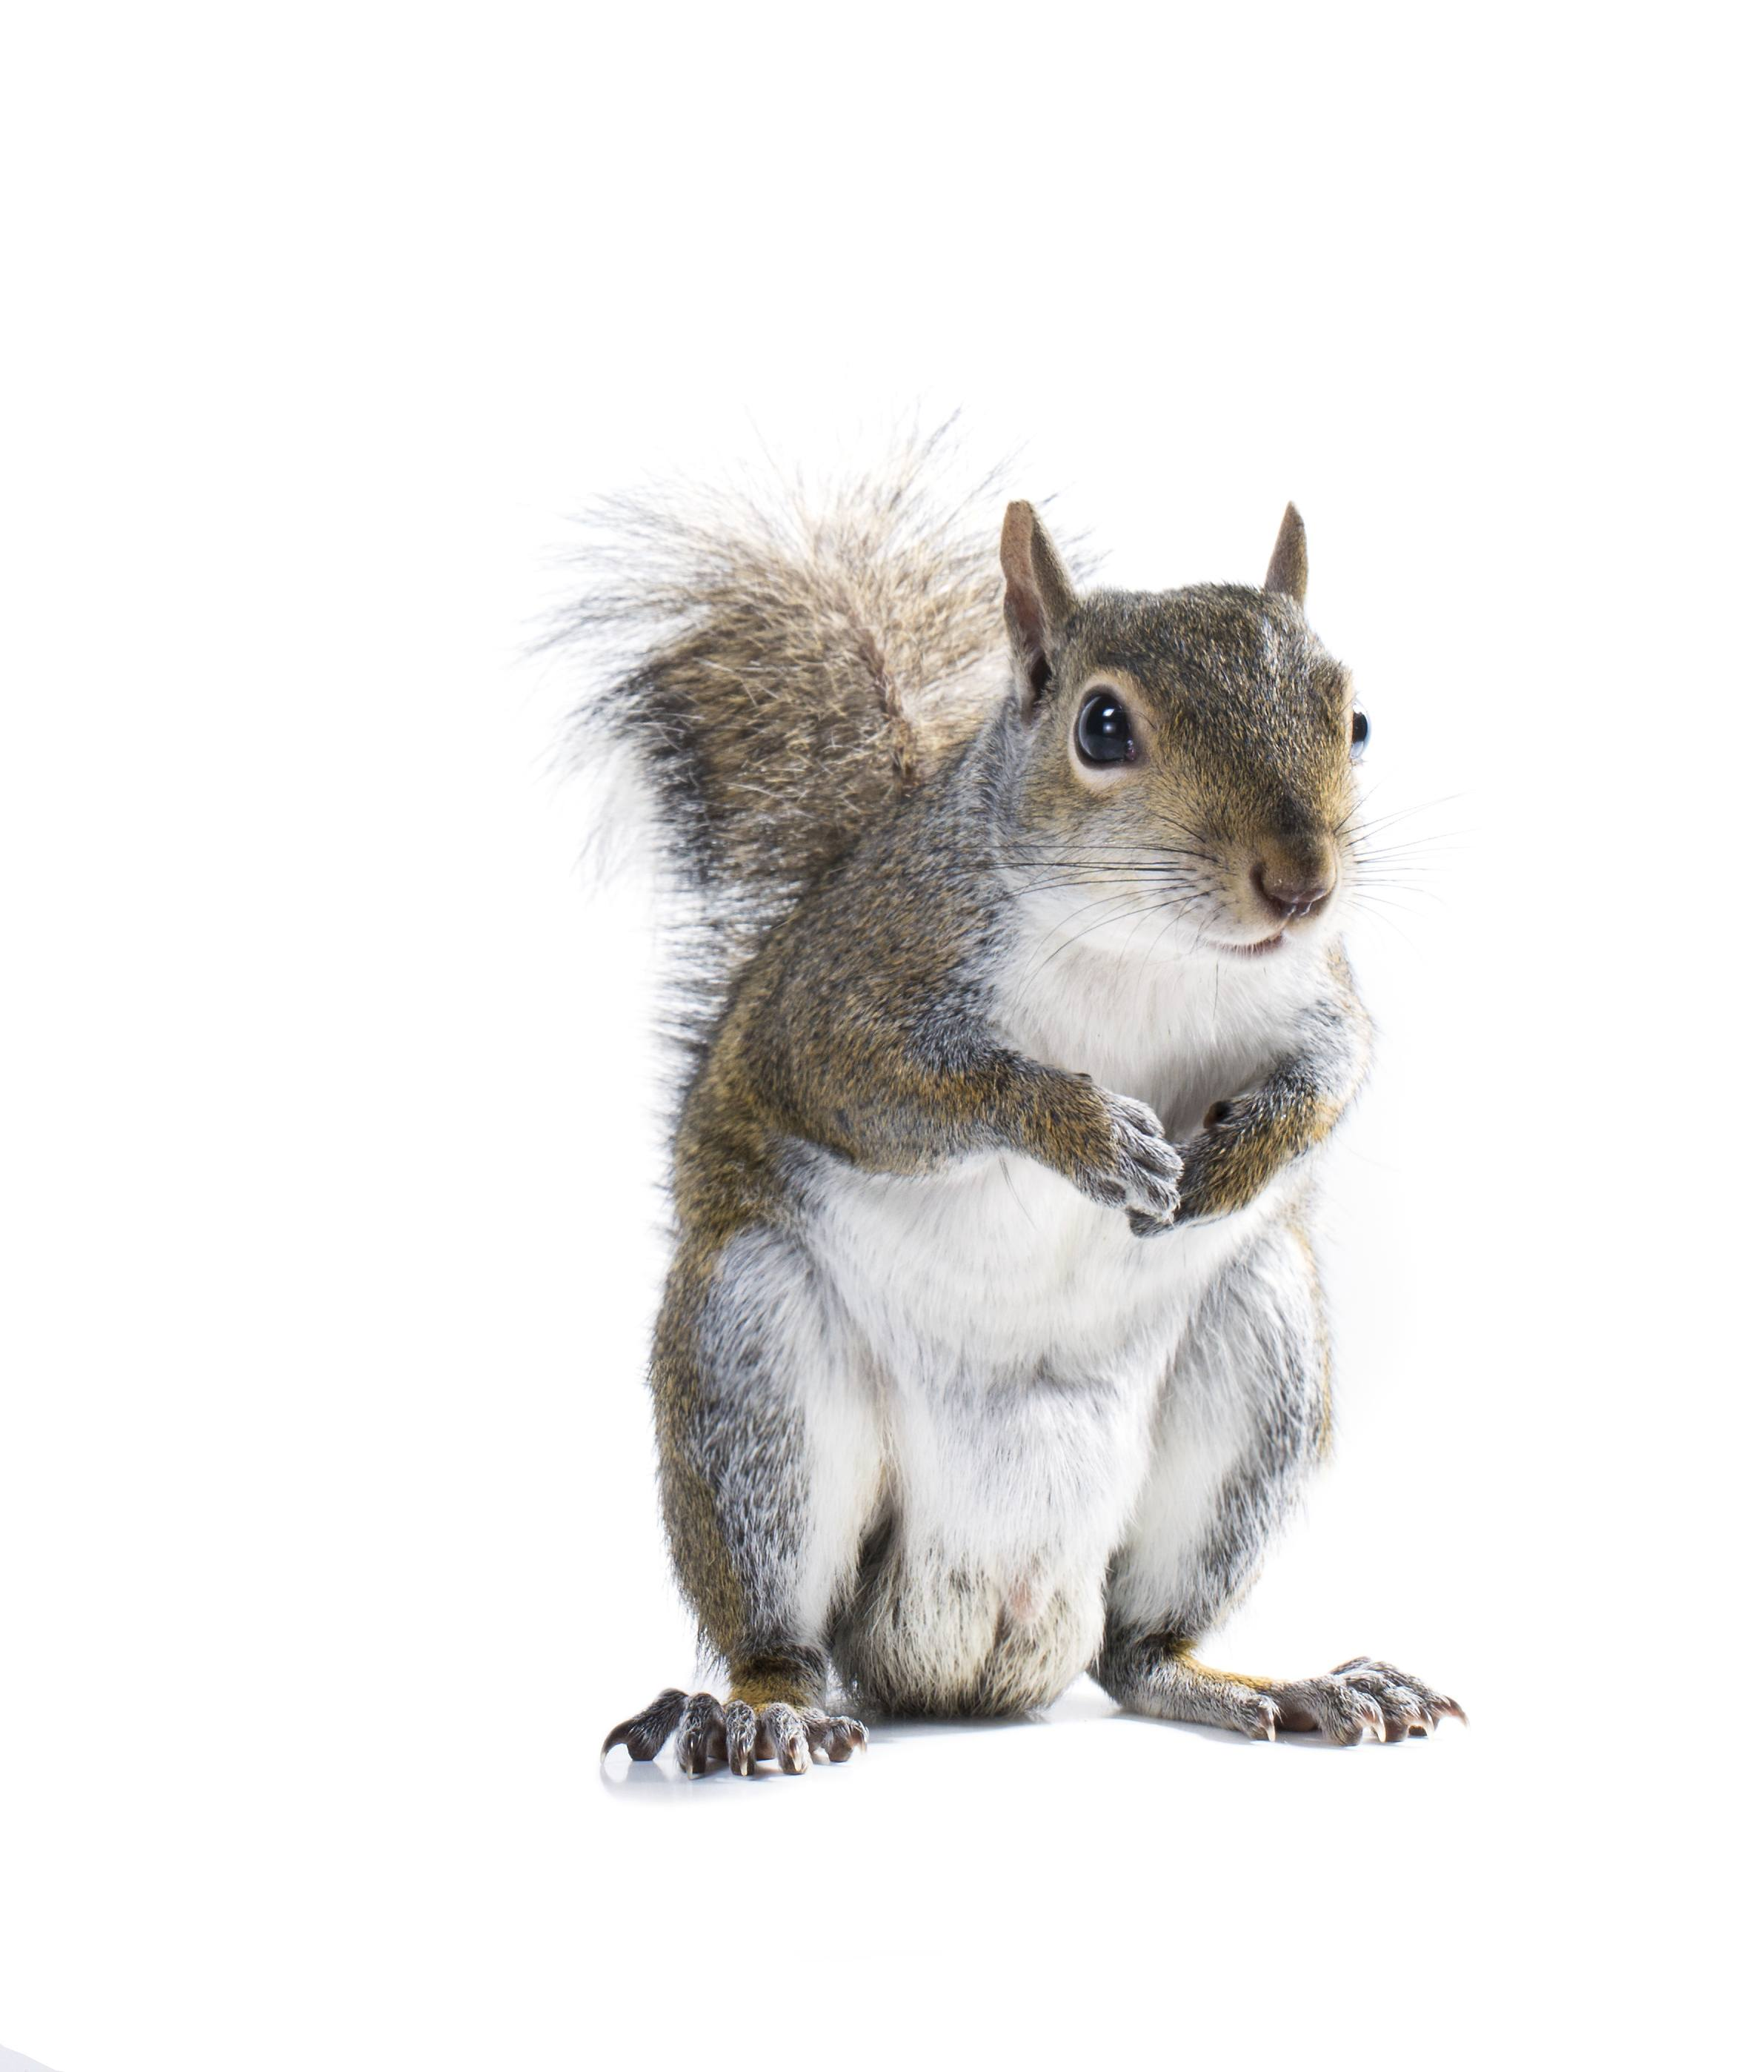 The American gray squirrel is holding legs to his chest.